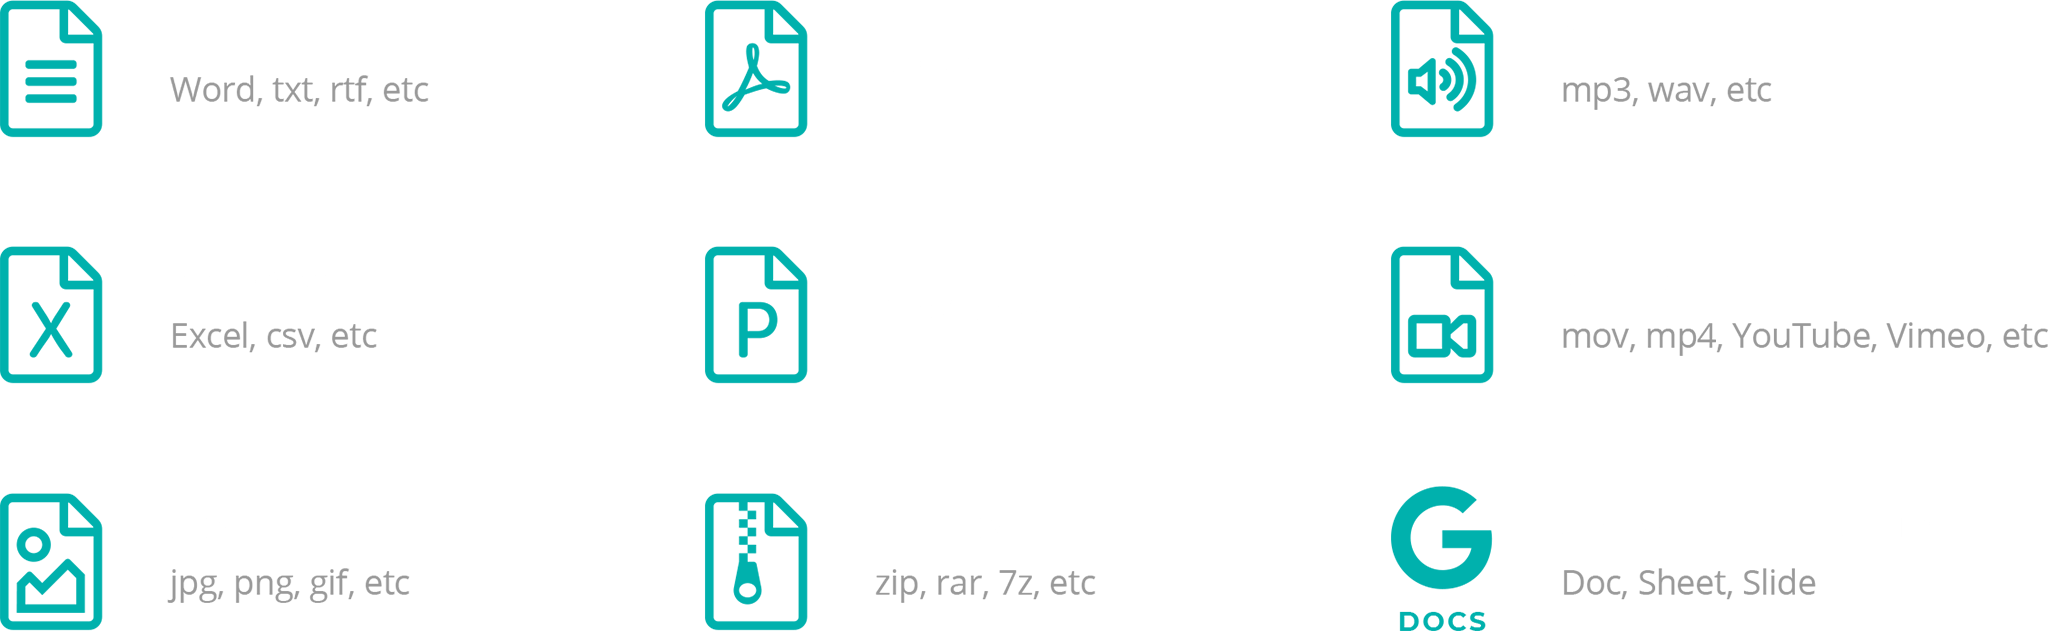 Web portal supported file types